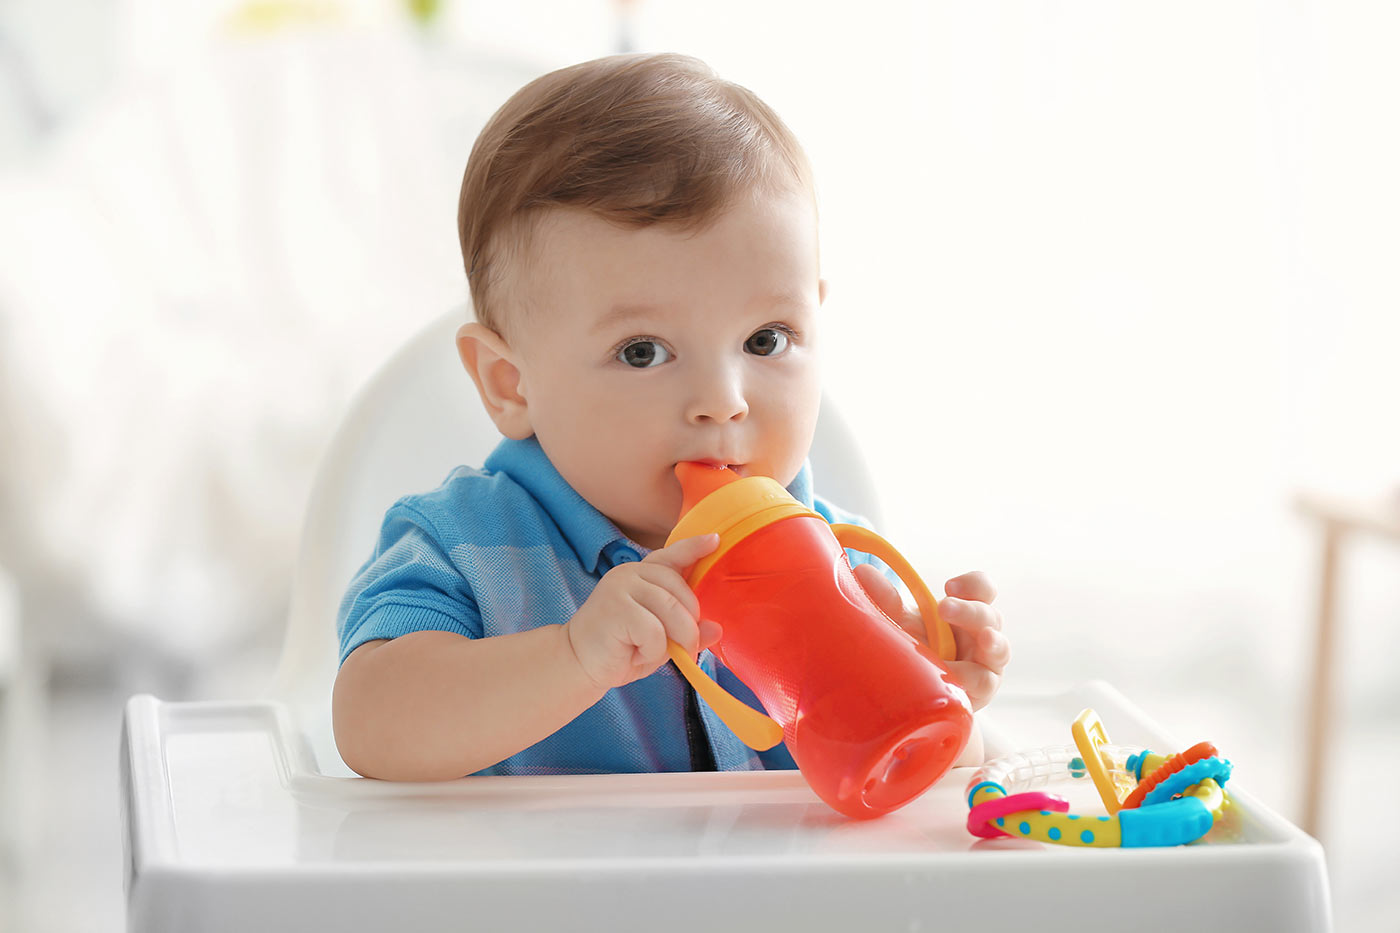 Baby drinking a sippy cup in a high chair